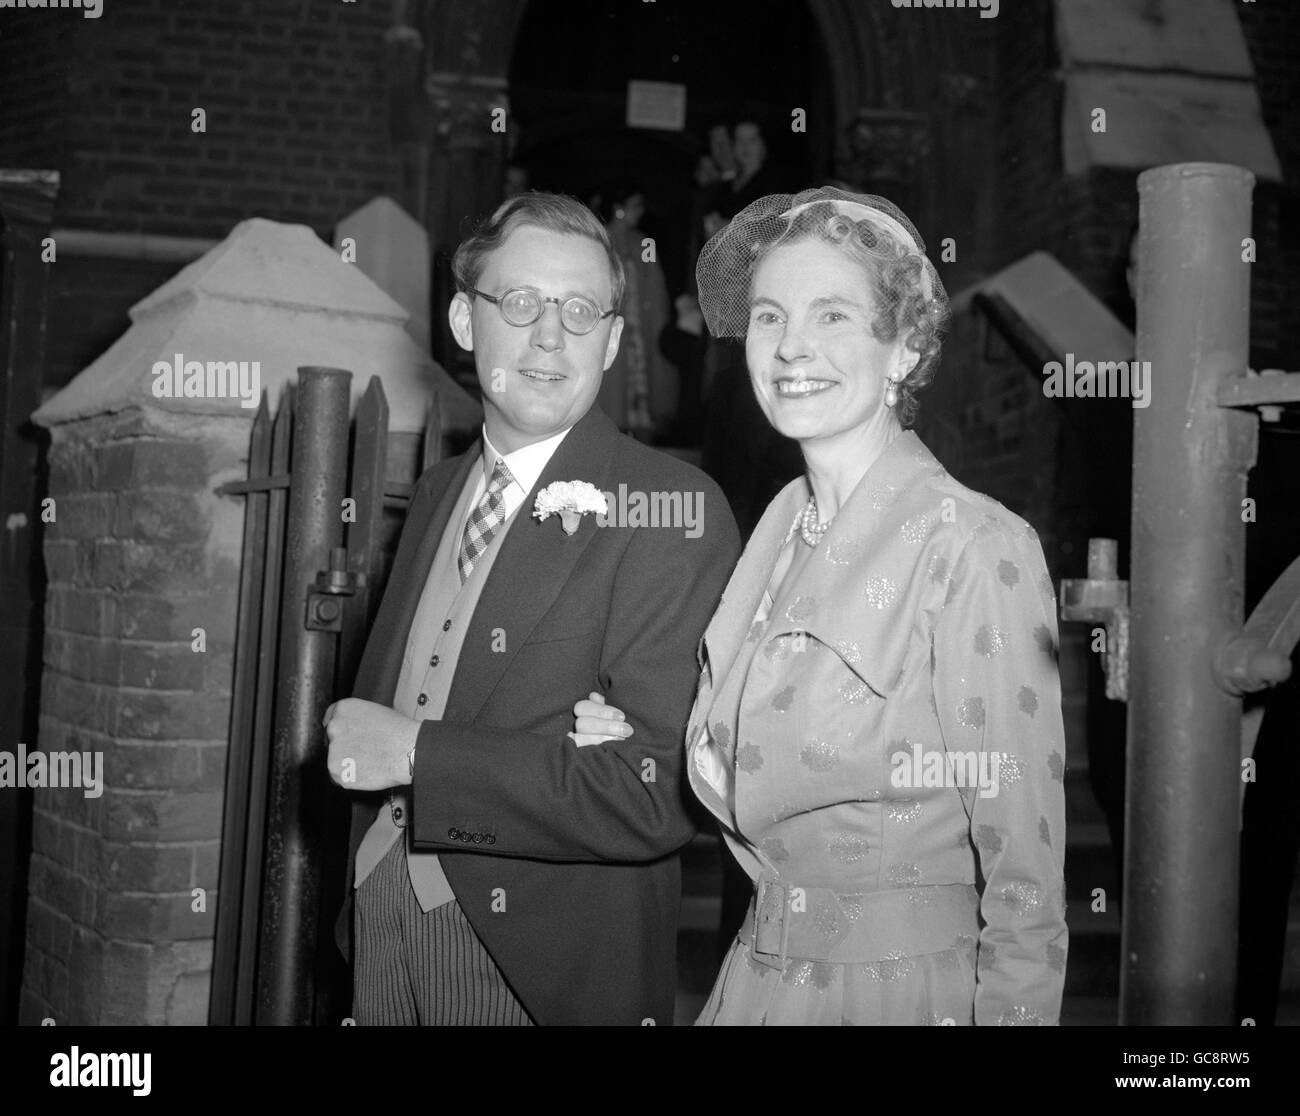 Oxford Don Weds - London - 1954 - Stock Image